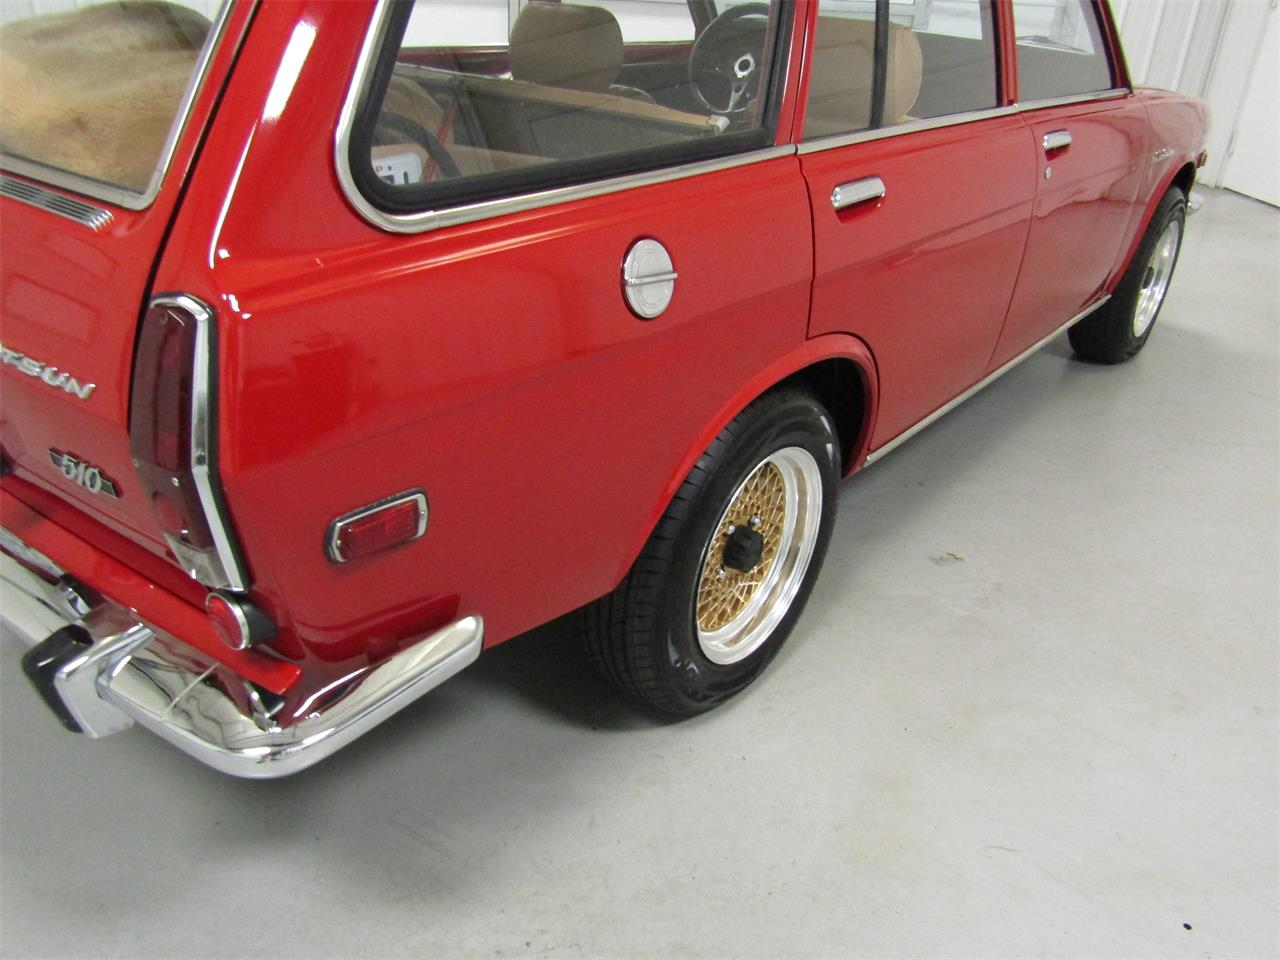 Large Picture of Classic '70 Datsun 510 located in Christiansburg Virginia - $19,900.00 Offered by Duncan Imports & Classic Cars - O676